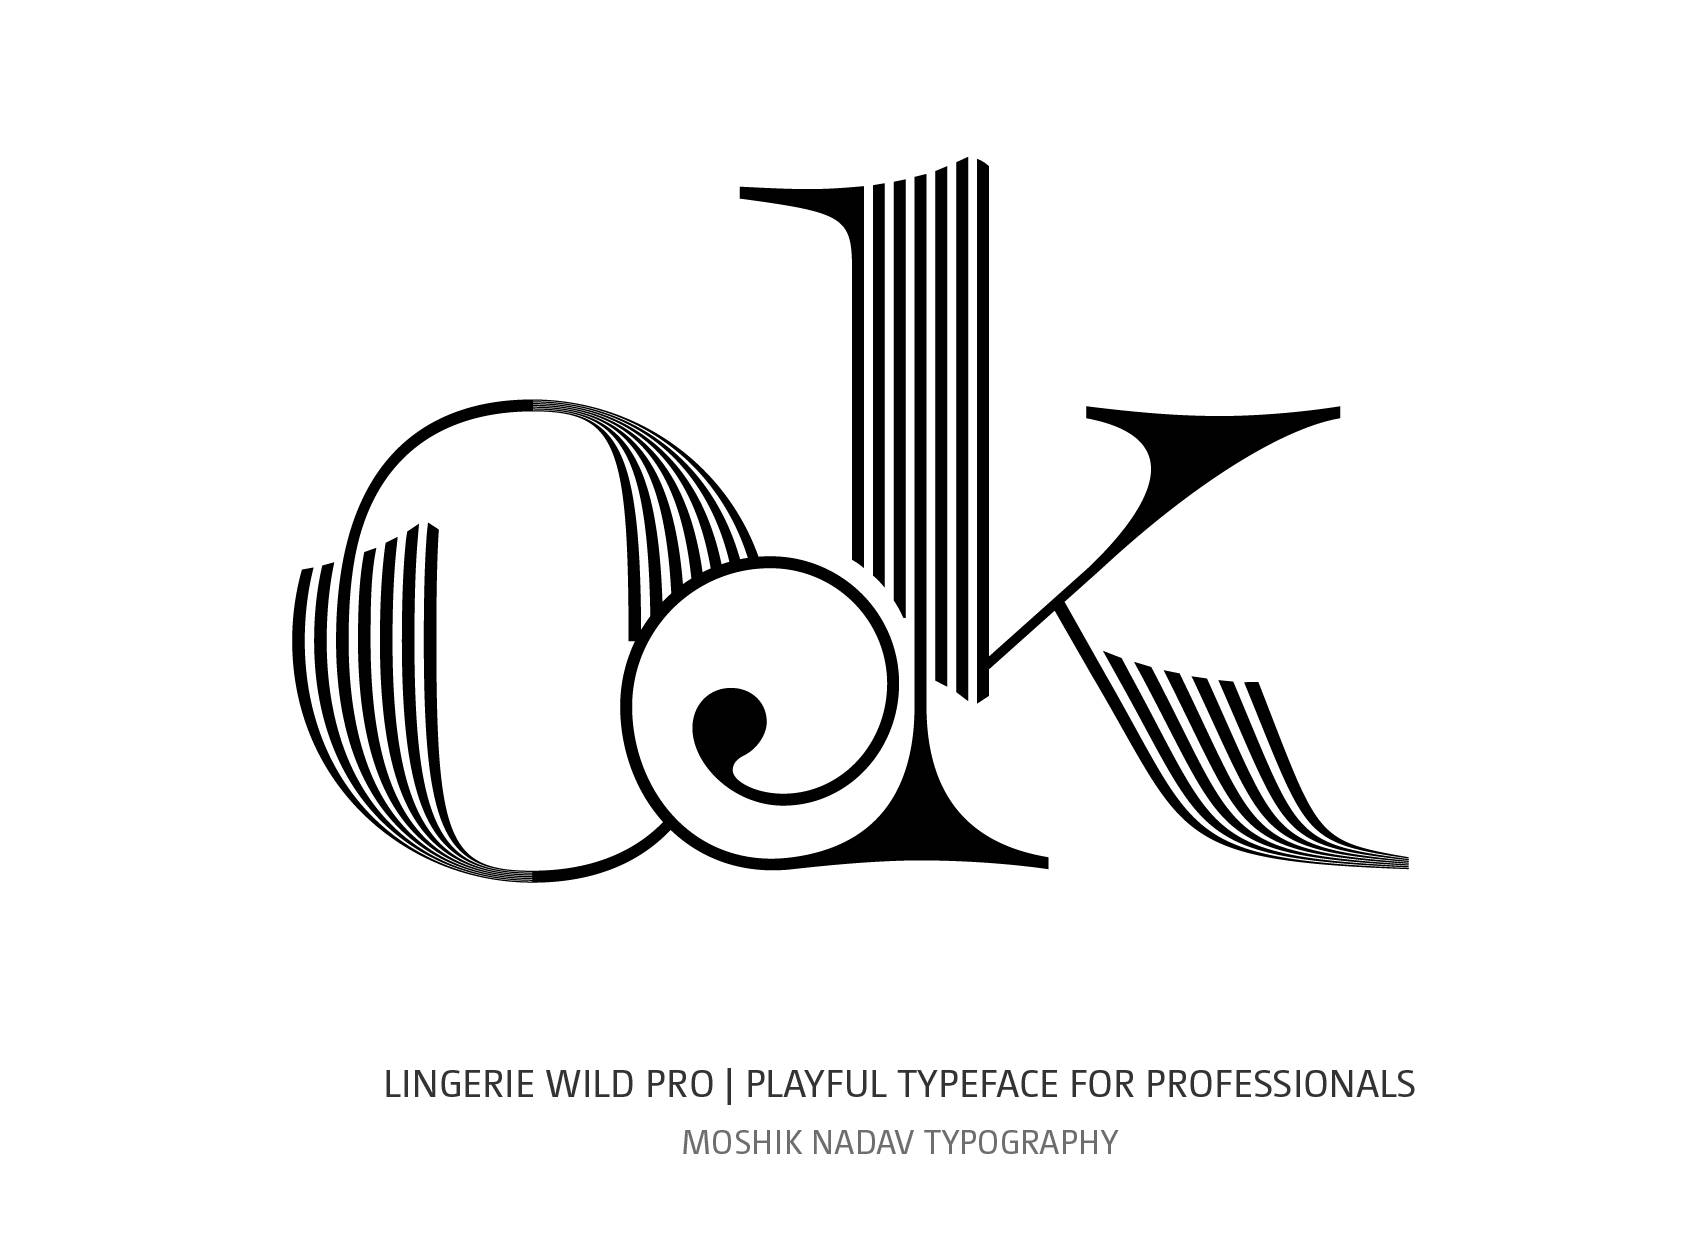 Unique ok ligature designed with Lingerie Wild Pro Typeface